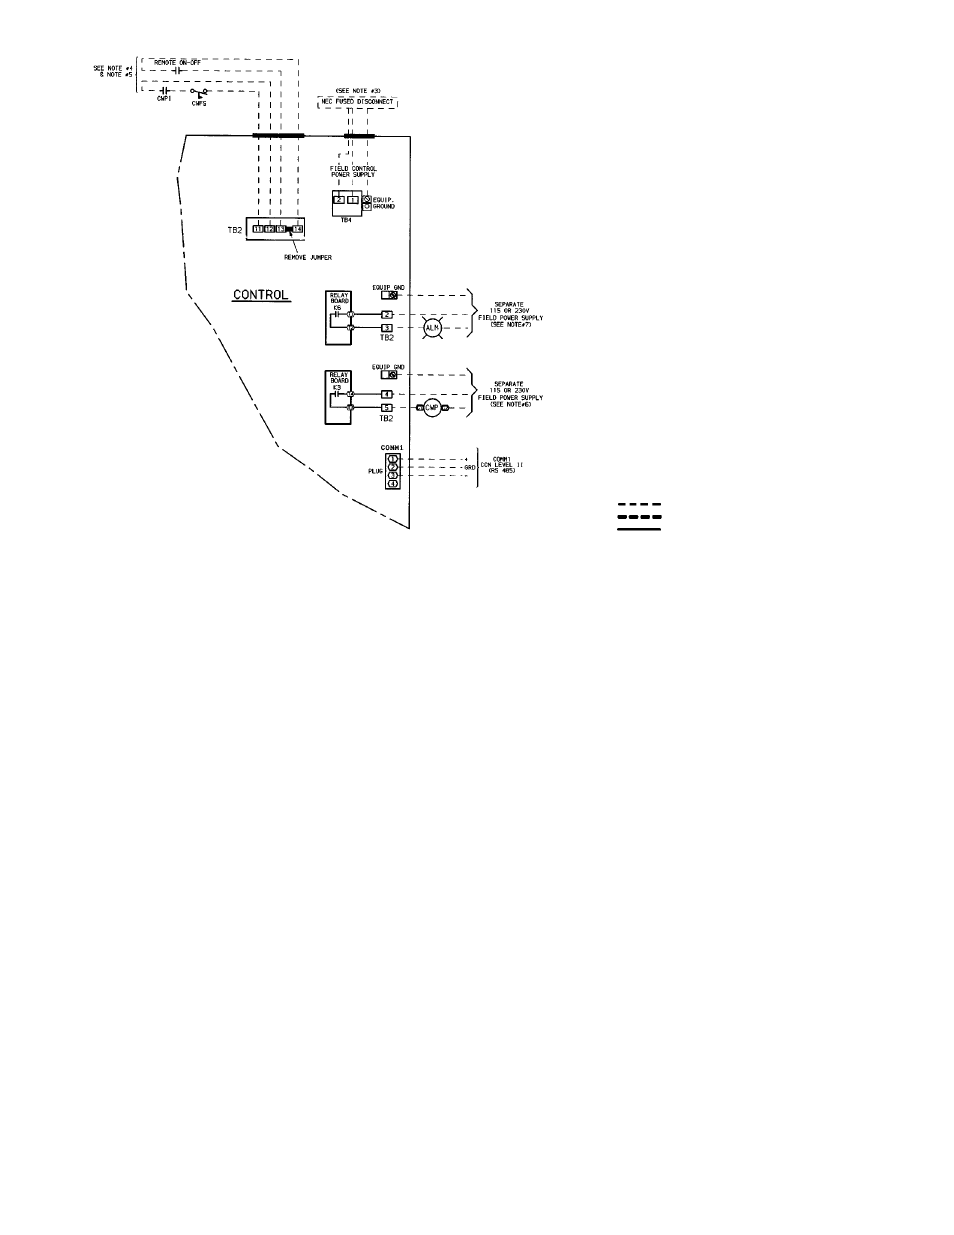 Carrier 30HXA,HXC076-186 Water-Cooled and Condenserless Chillers User Manual    Page 25 / 28